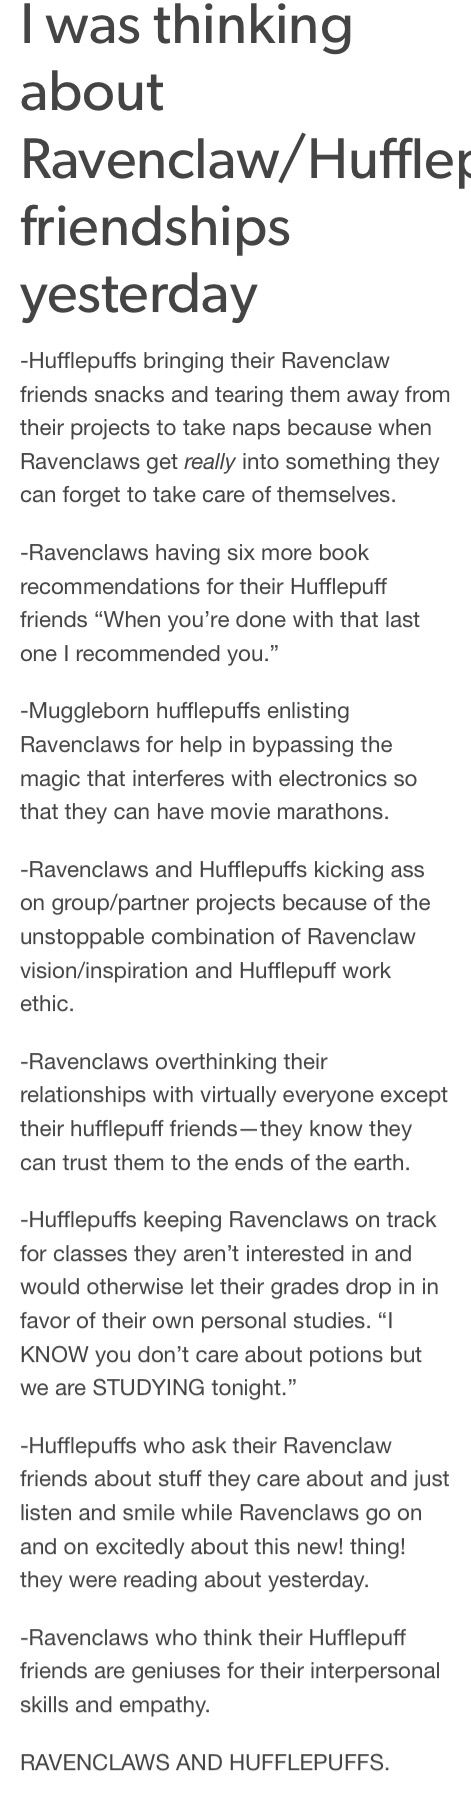 Hufflepuff and Ravenclaw friendship